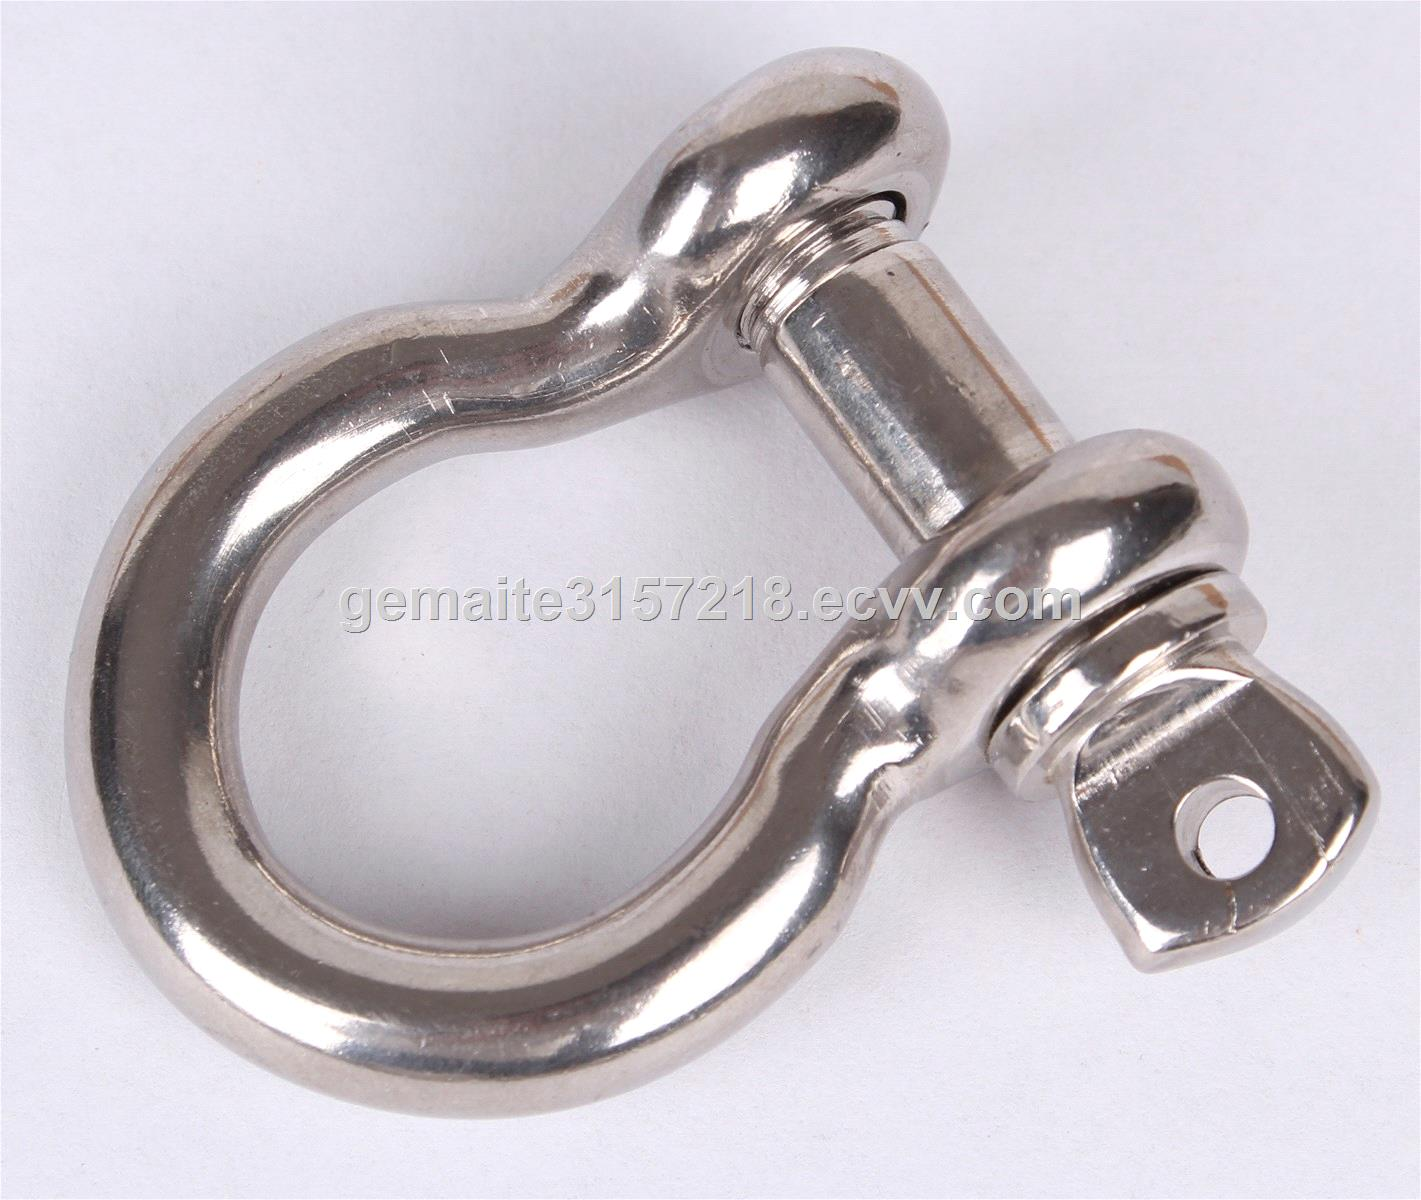 Stainless Steel ShackleAll kinds and size of stainless steel 316 and 304 Shackle